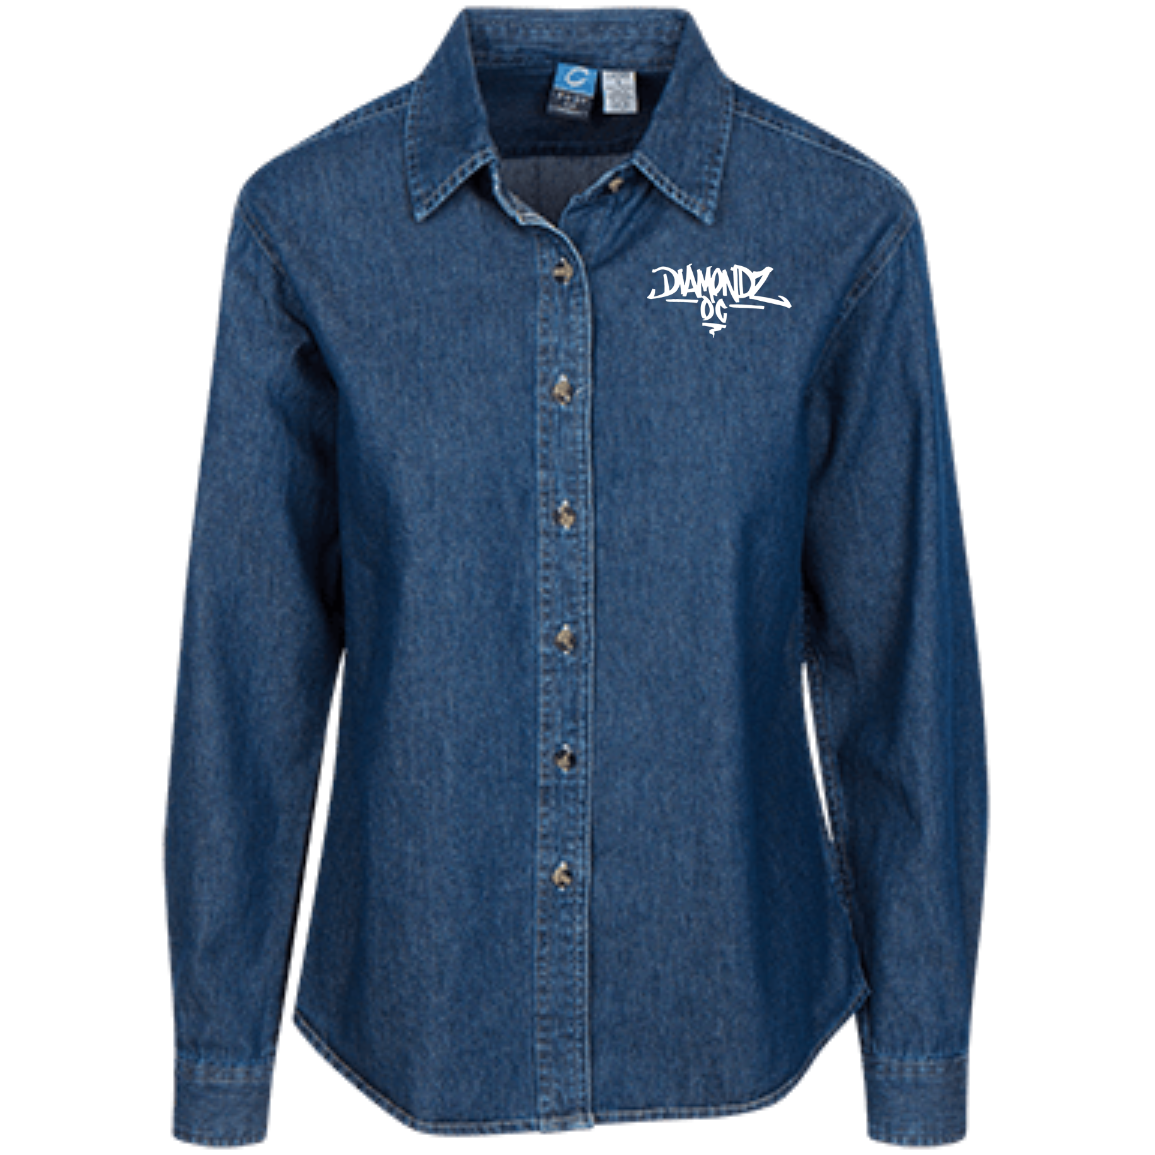 DOC iHustle365 Logo Embroidered Women's LS Denim Shirt